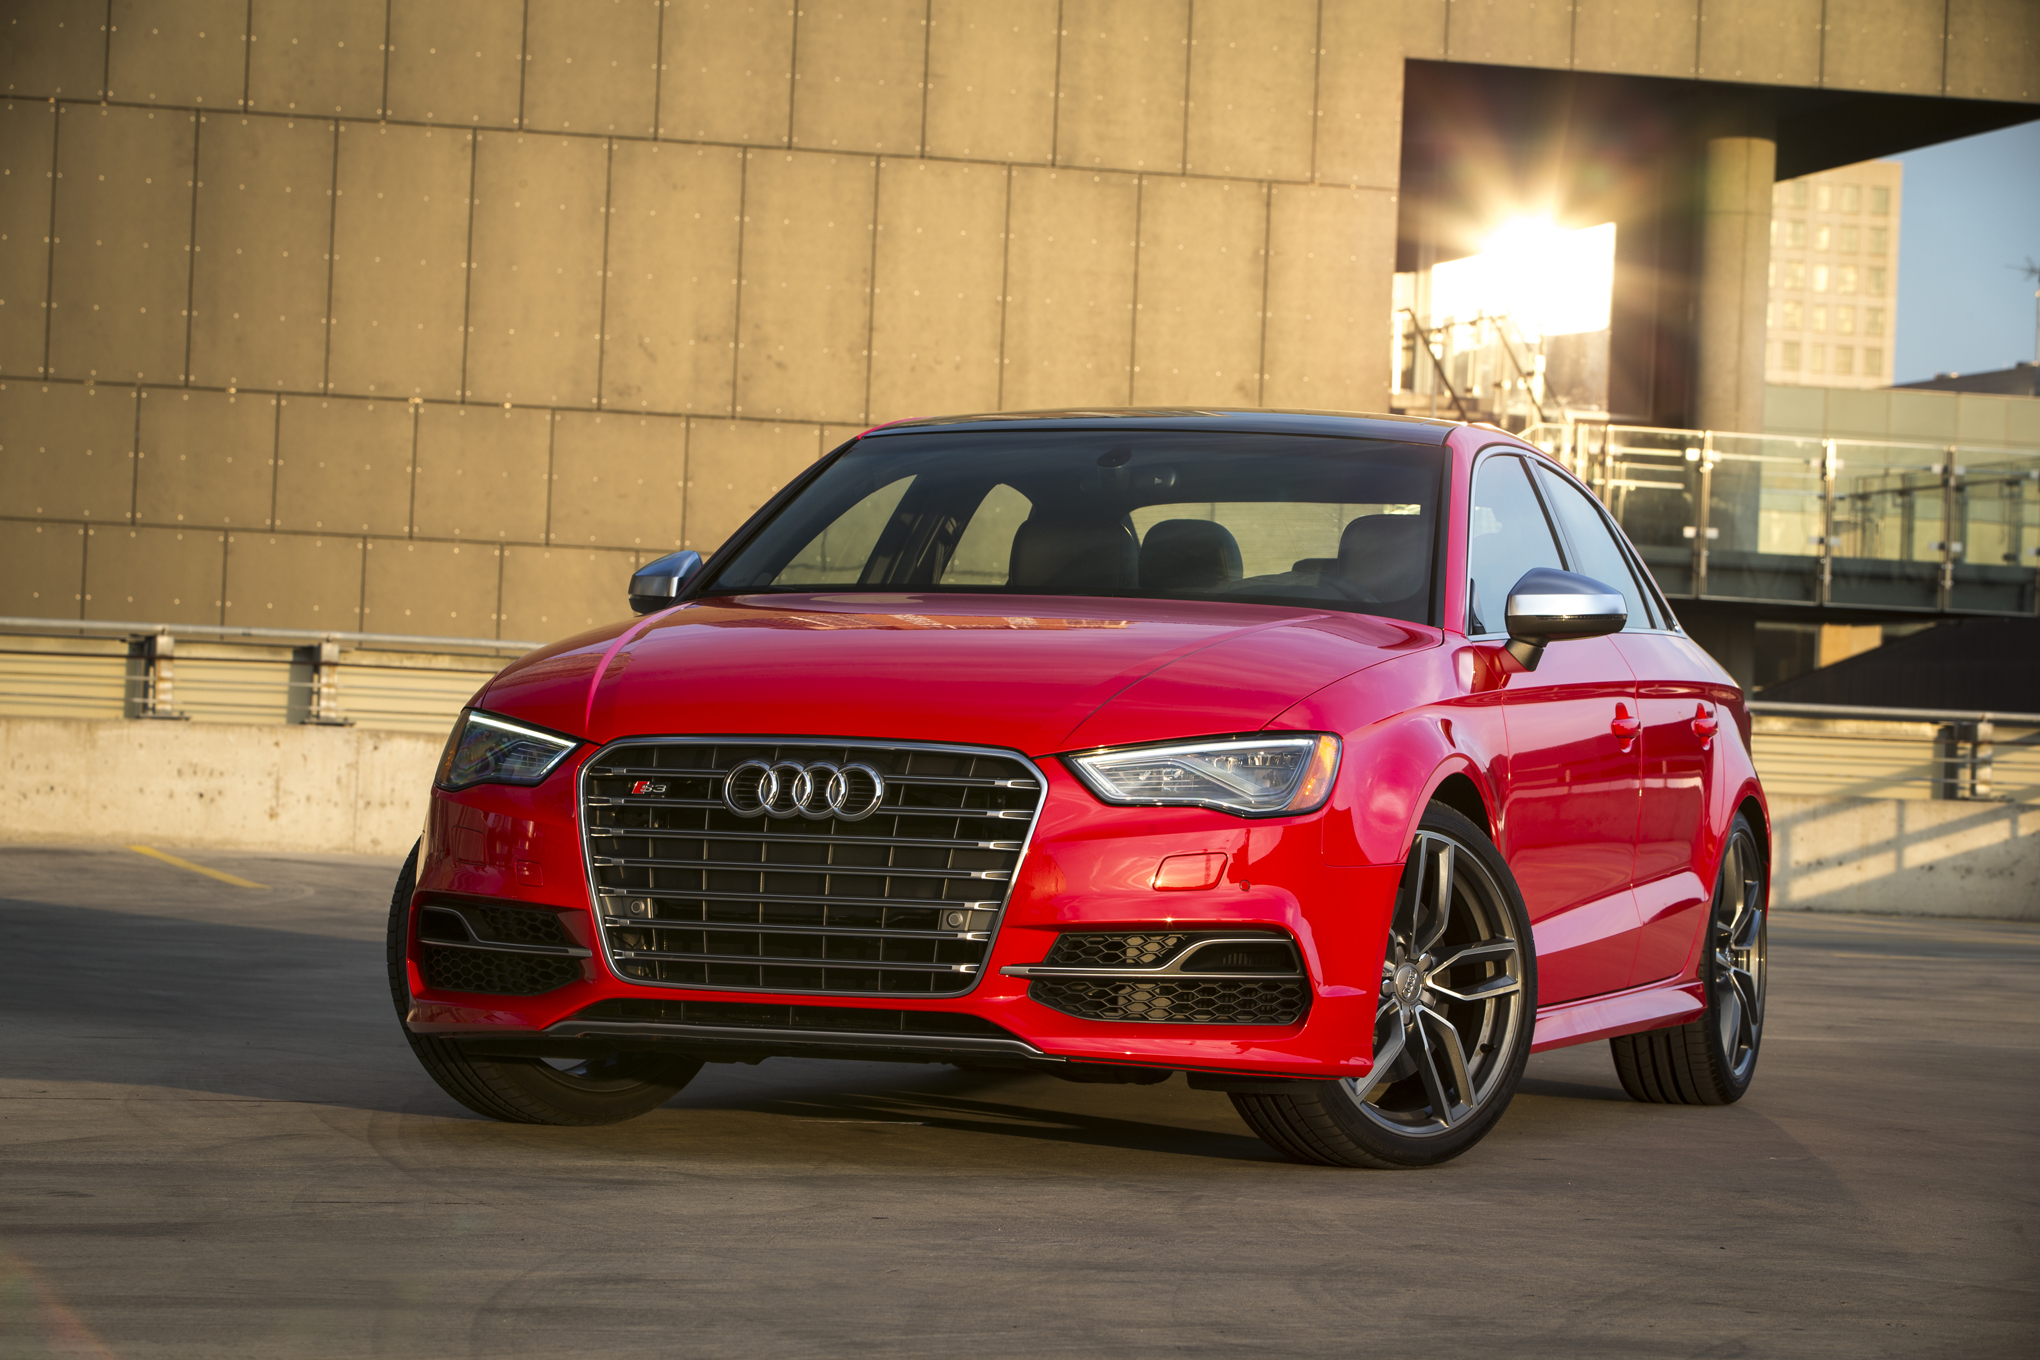 2015 audi s3 sedan price 1196 cars performance reviews and test drive. Black Bedroom Furniture Sets. Home Design Ideas